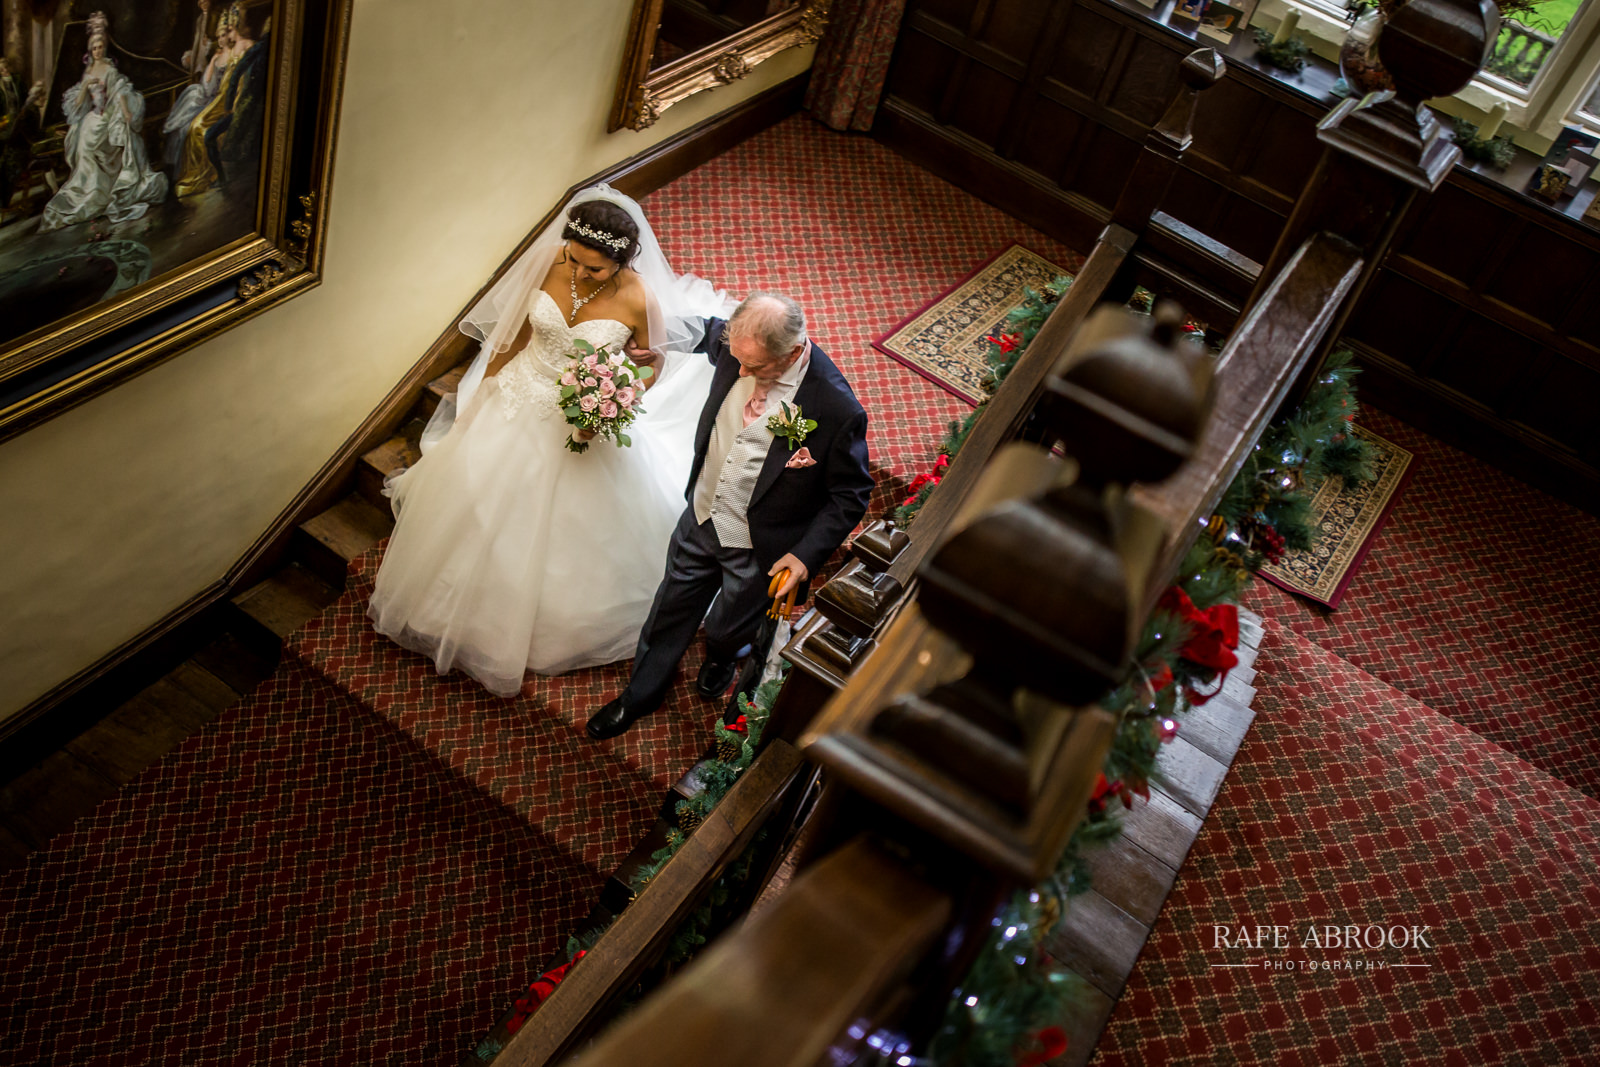 goldsborough hall wedding harrogate knaresborough yorkshire hertfordshire wedding photographer-1099.jpg